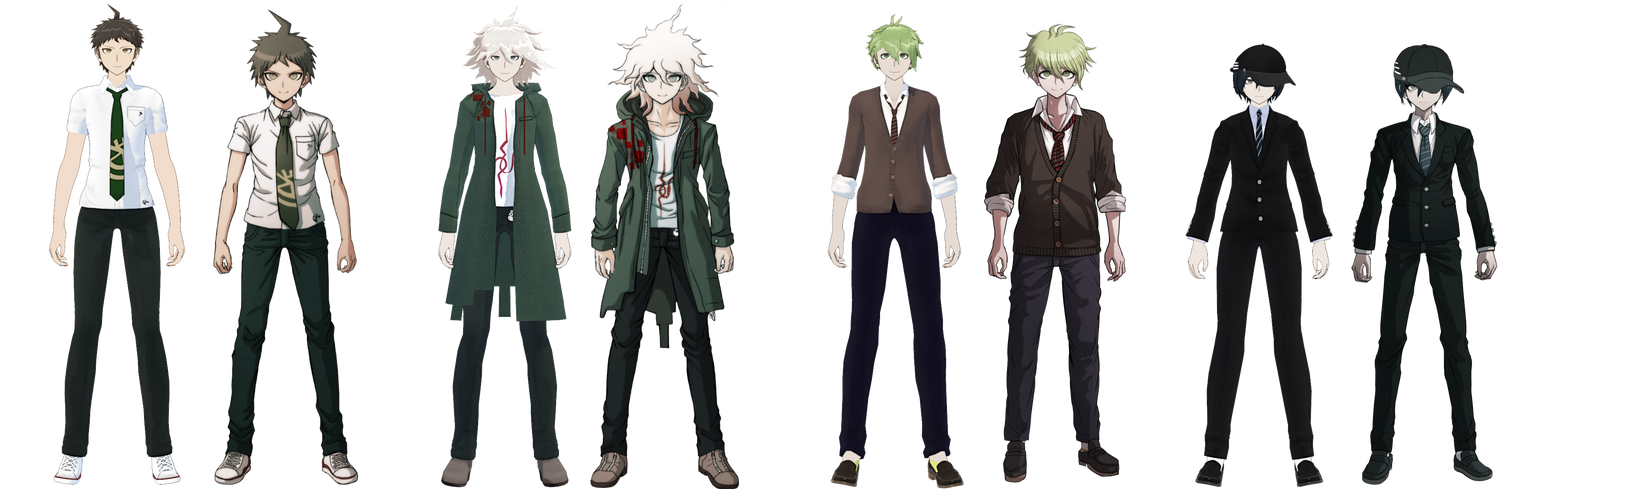 Danganronpa Edit vs Sprite Comparison by AmaiAkai on DeviantArt